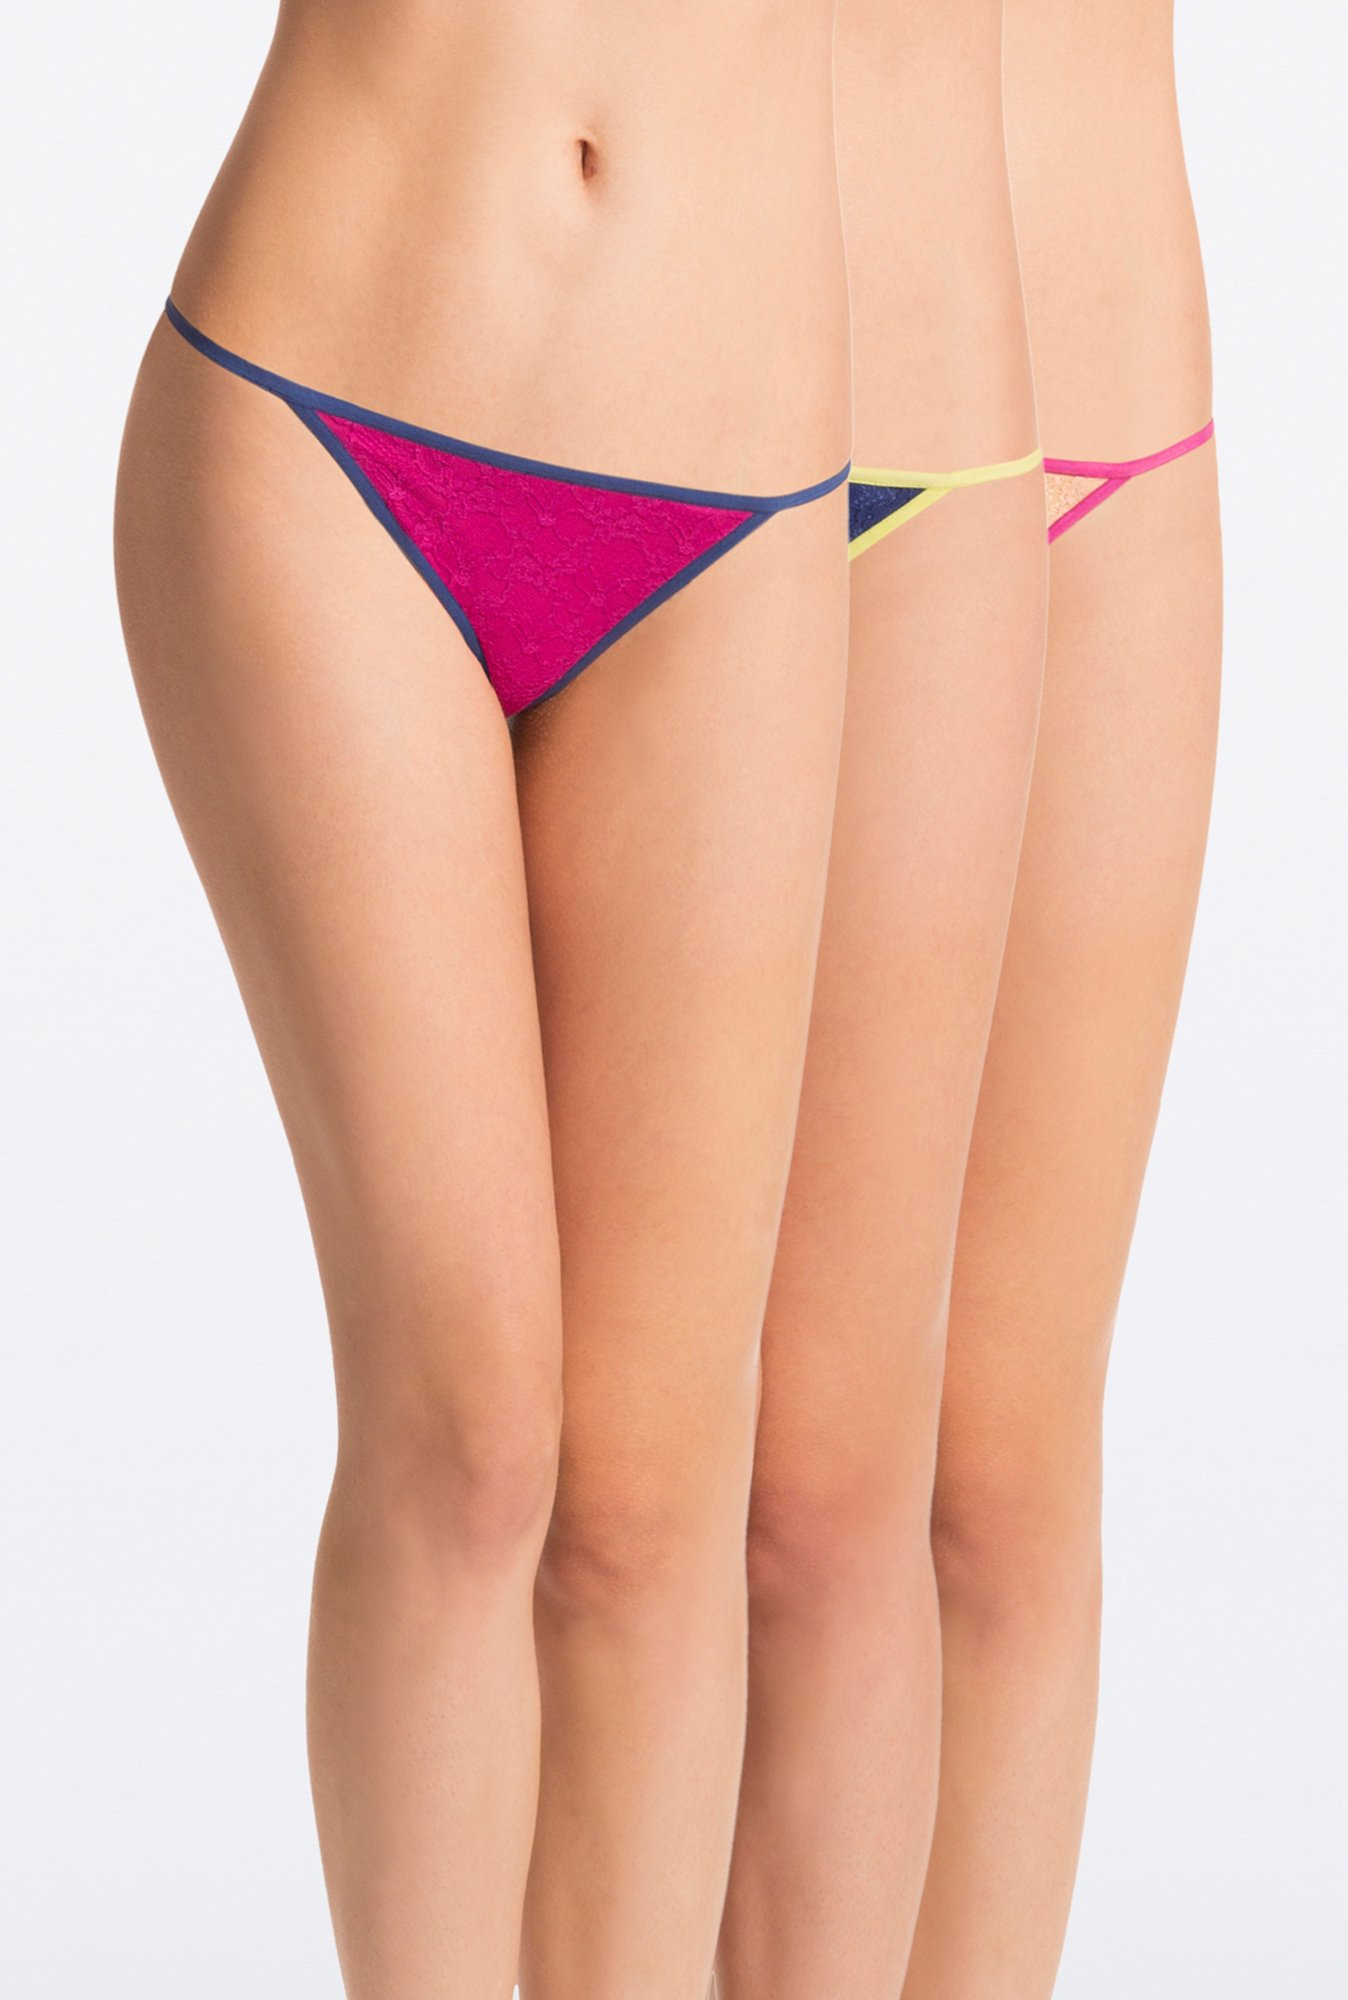 Pretty Secrets G-String Panties (Magenta, Navy & Nude)